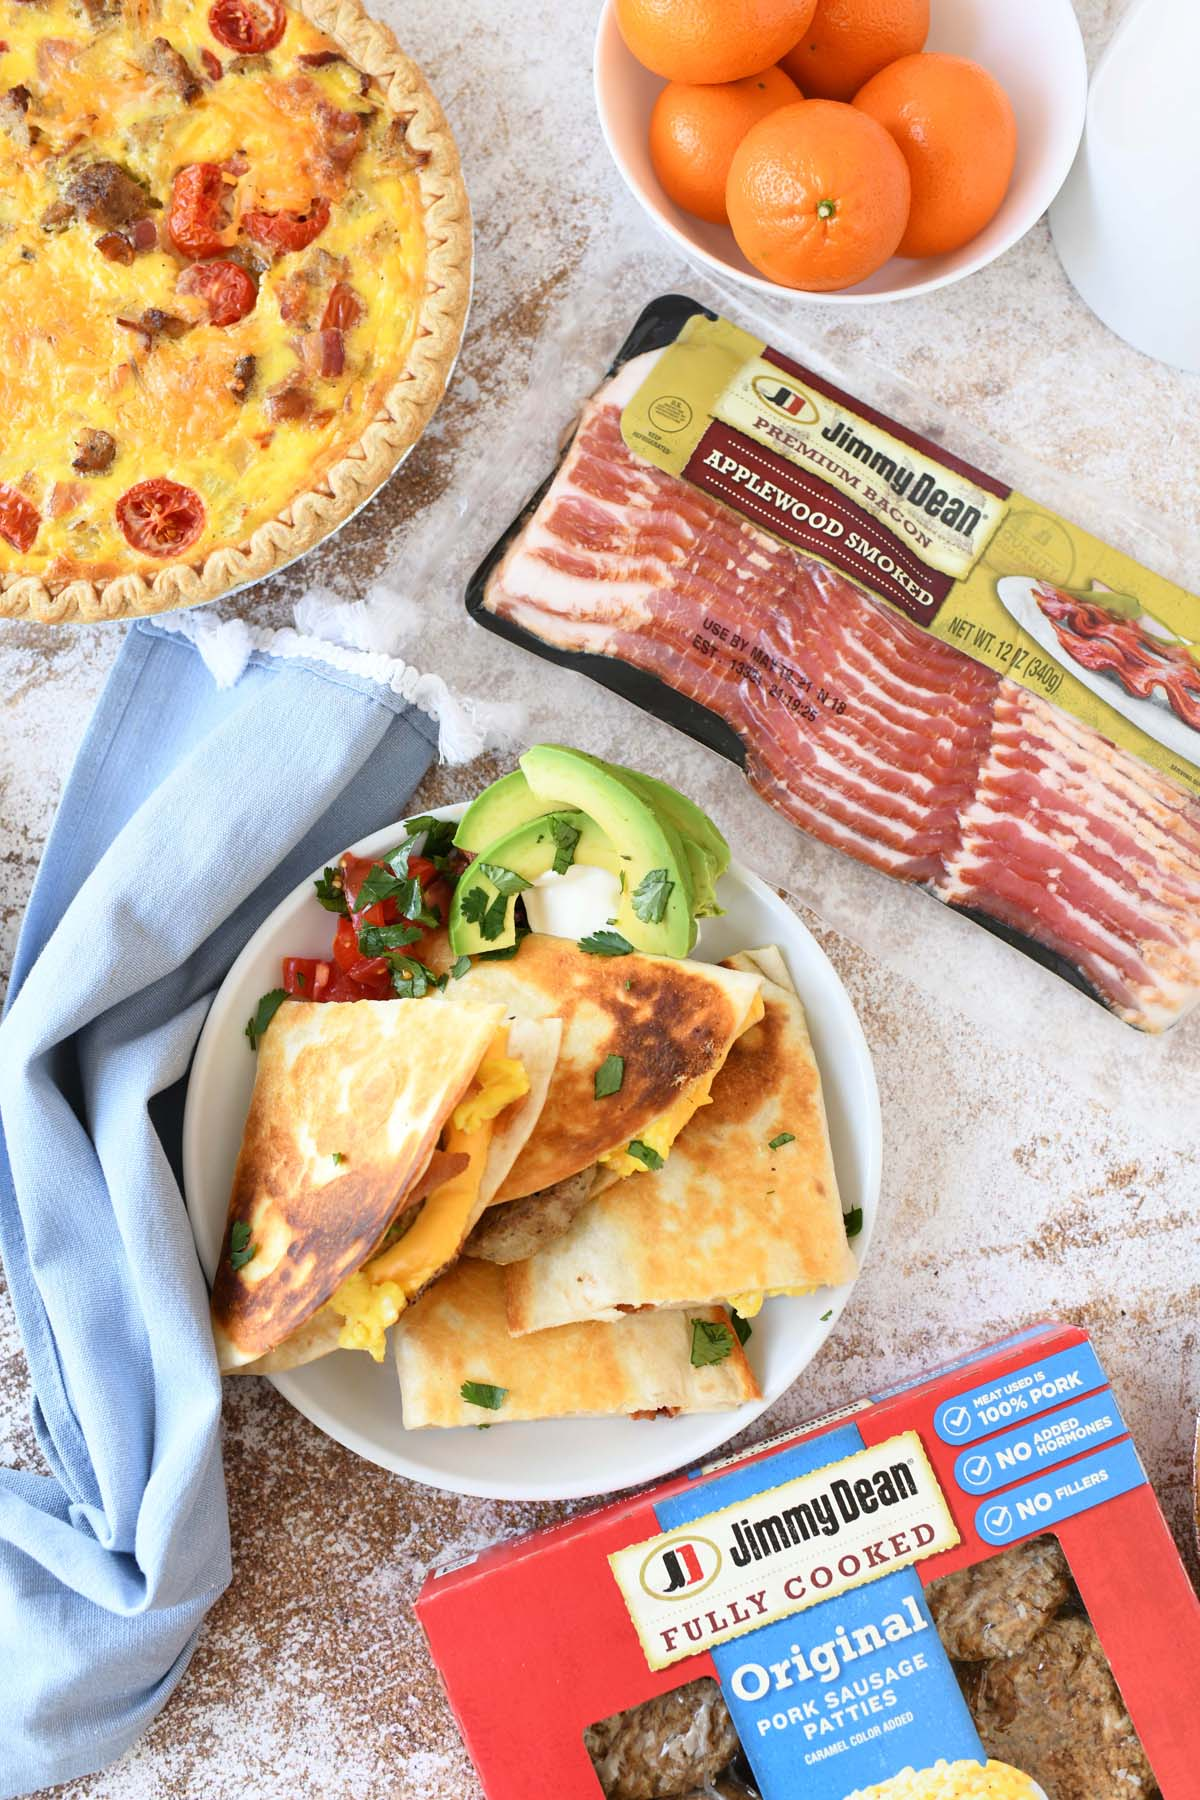 Bacon and Sausage Quesadillas on a white plate with Jimmy Dean Sausage and Bacon nearby.